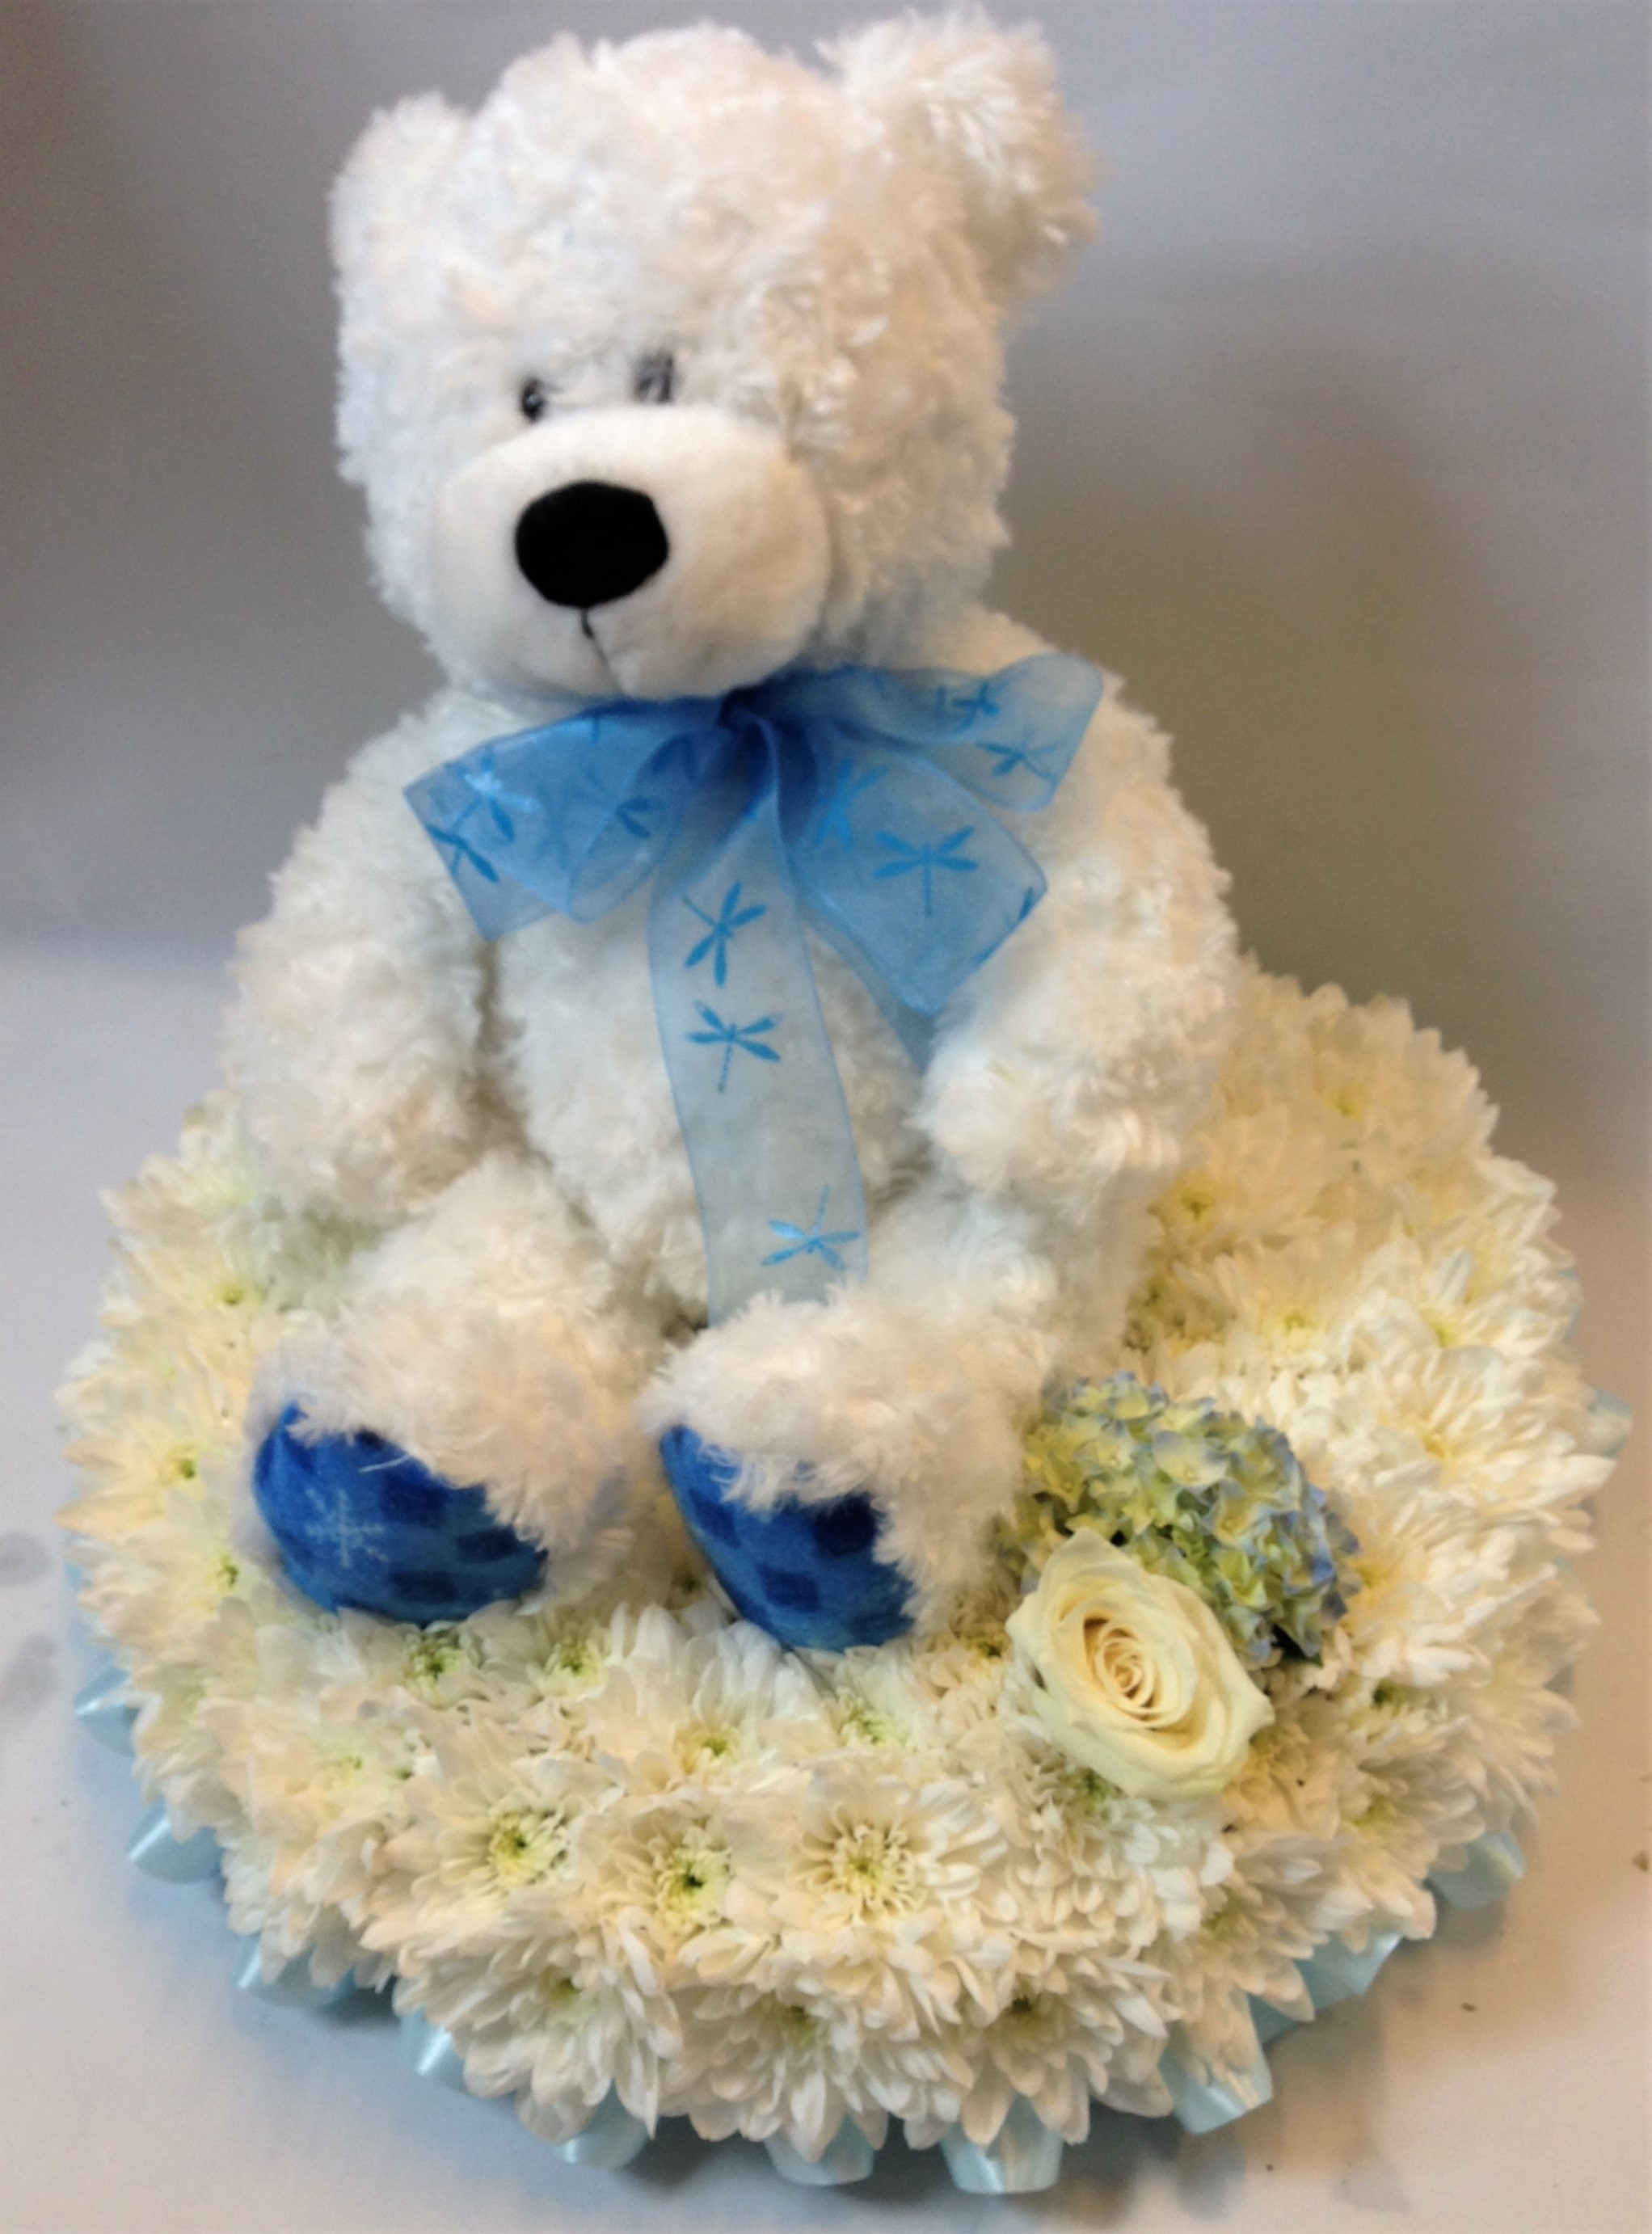 Personal Teddy Bear Funeral Flowers cheap flowers funeral item redditch florist